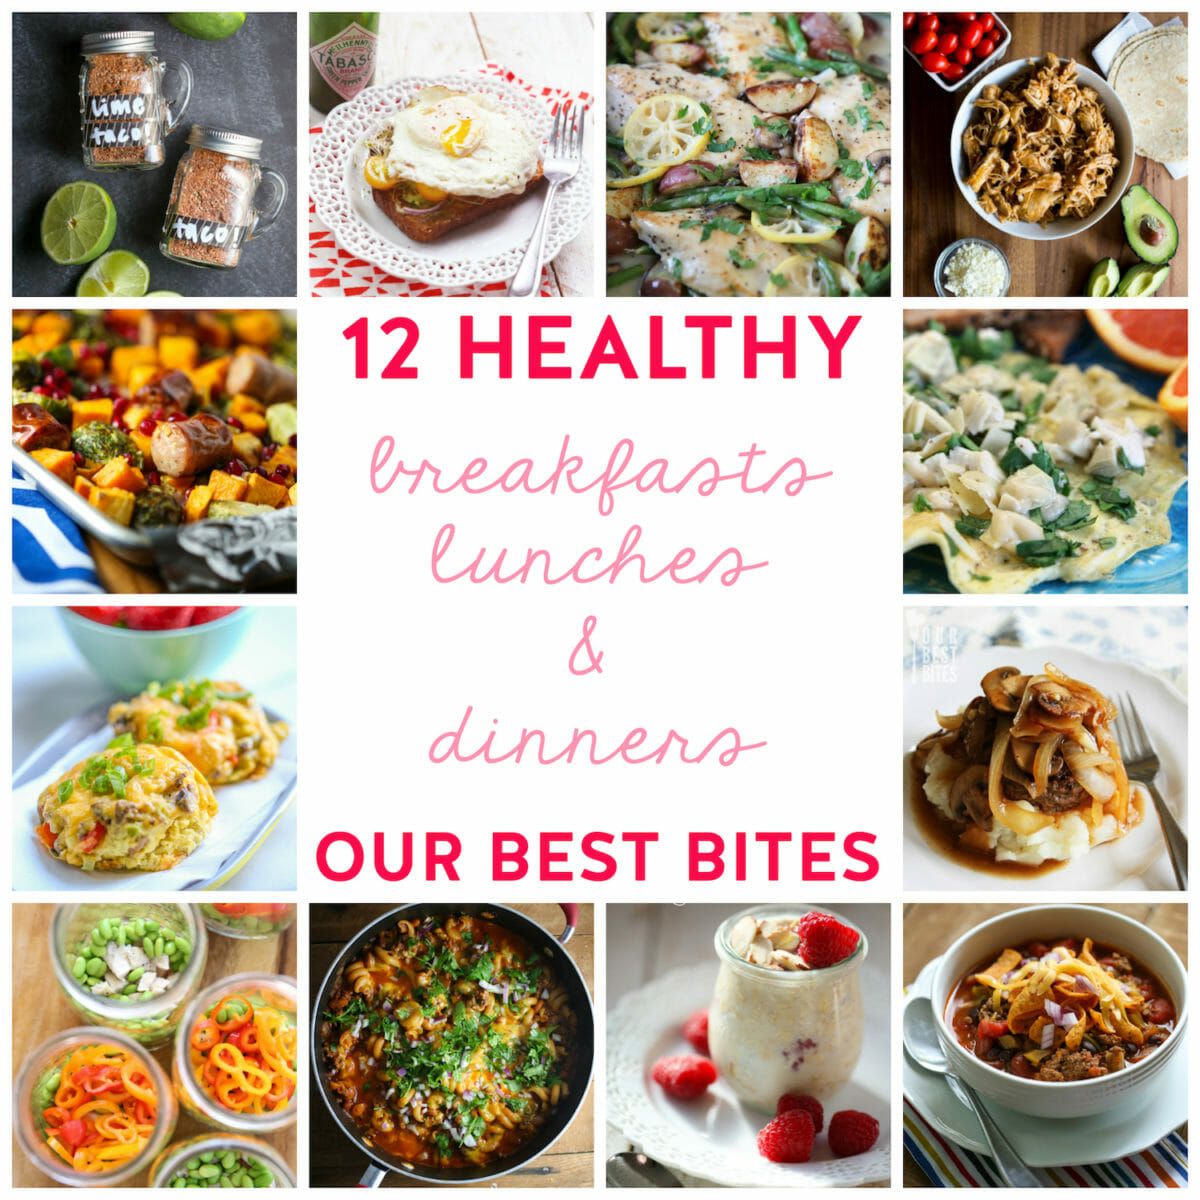 12 Healthy Family-Friendly Recipes